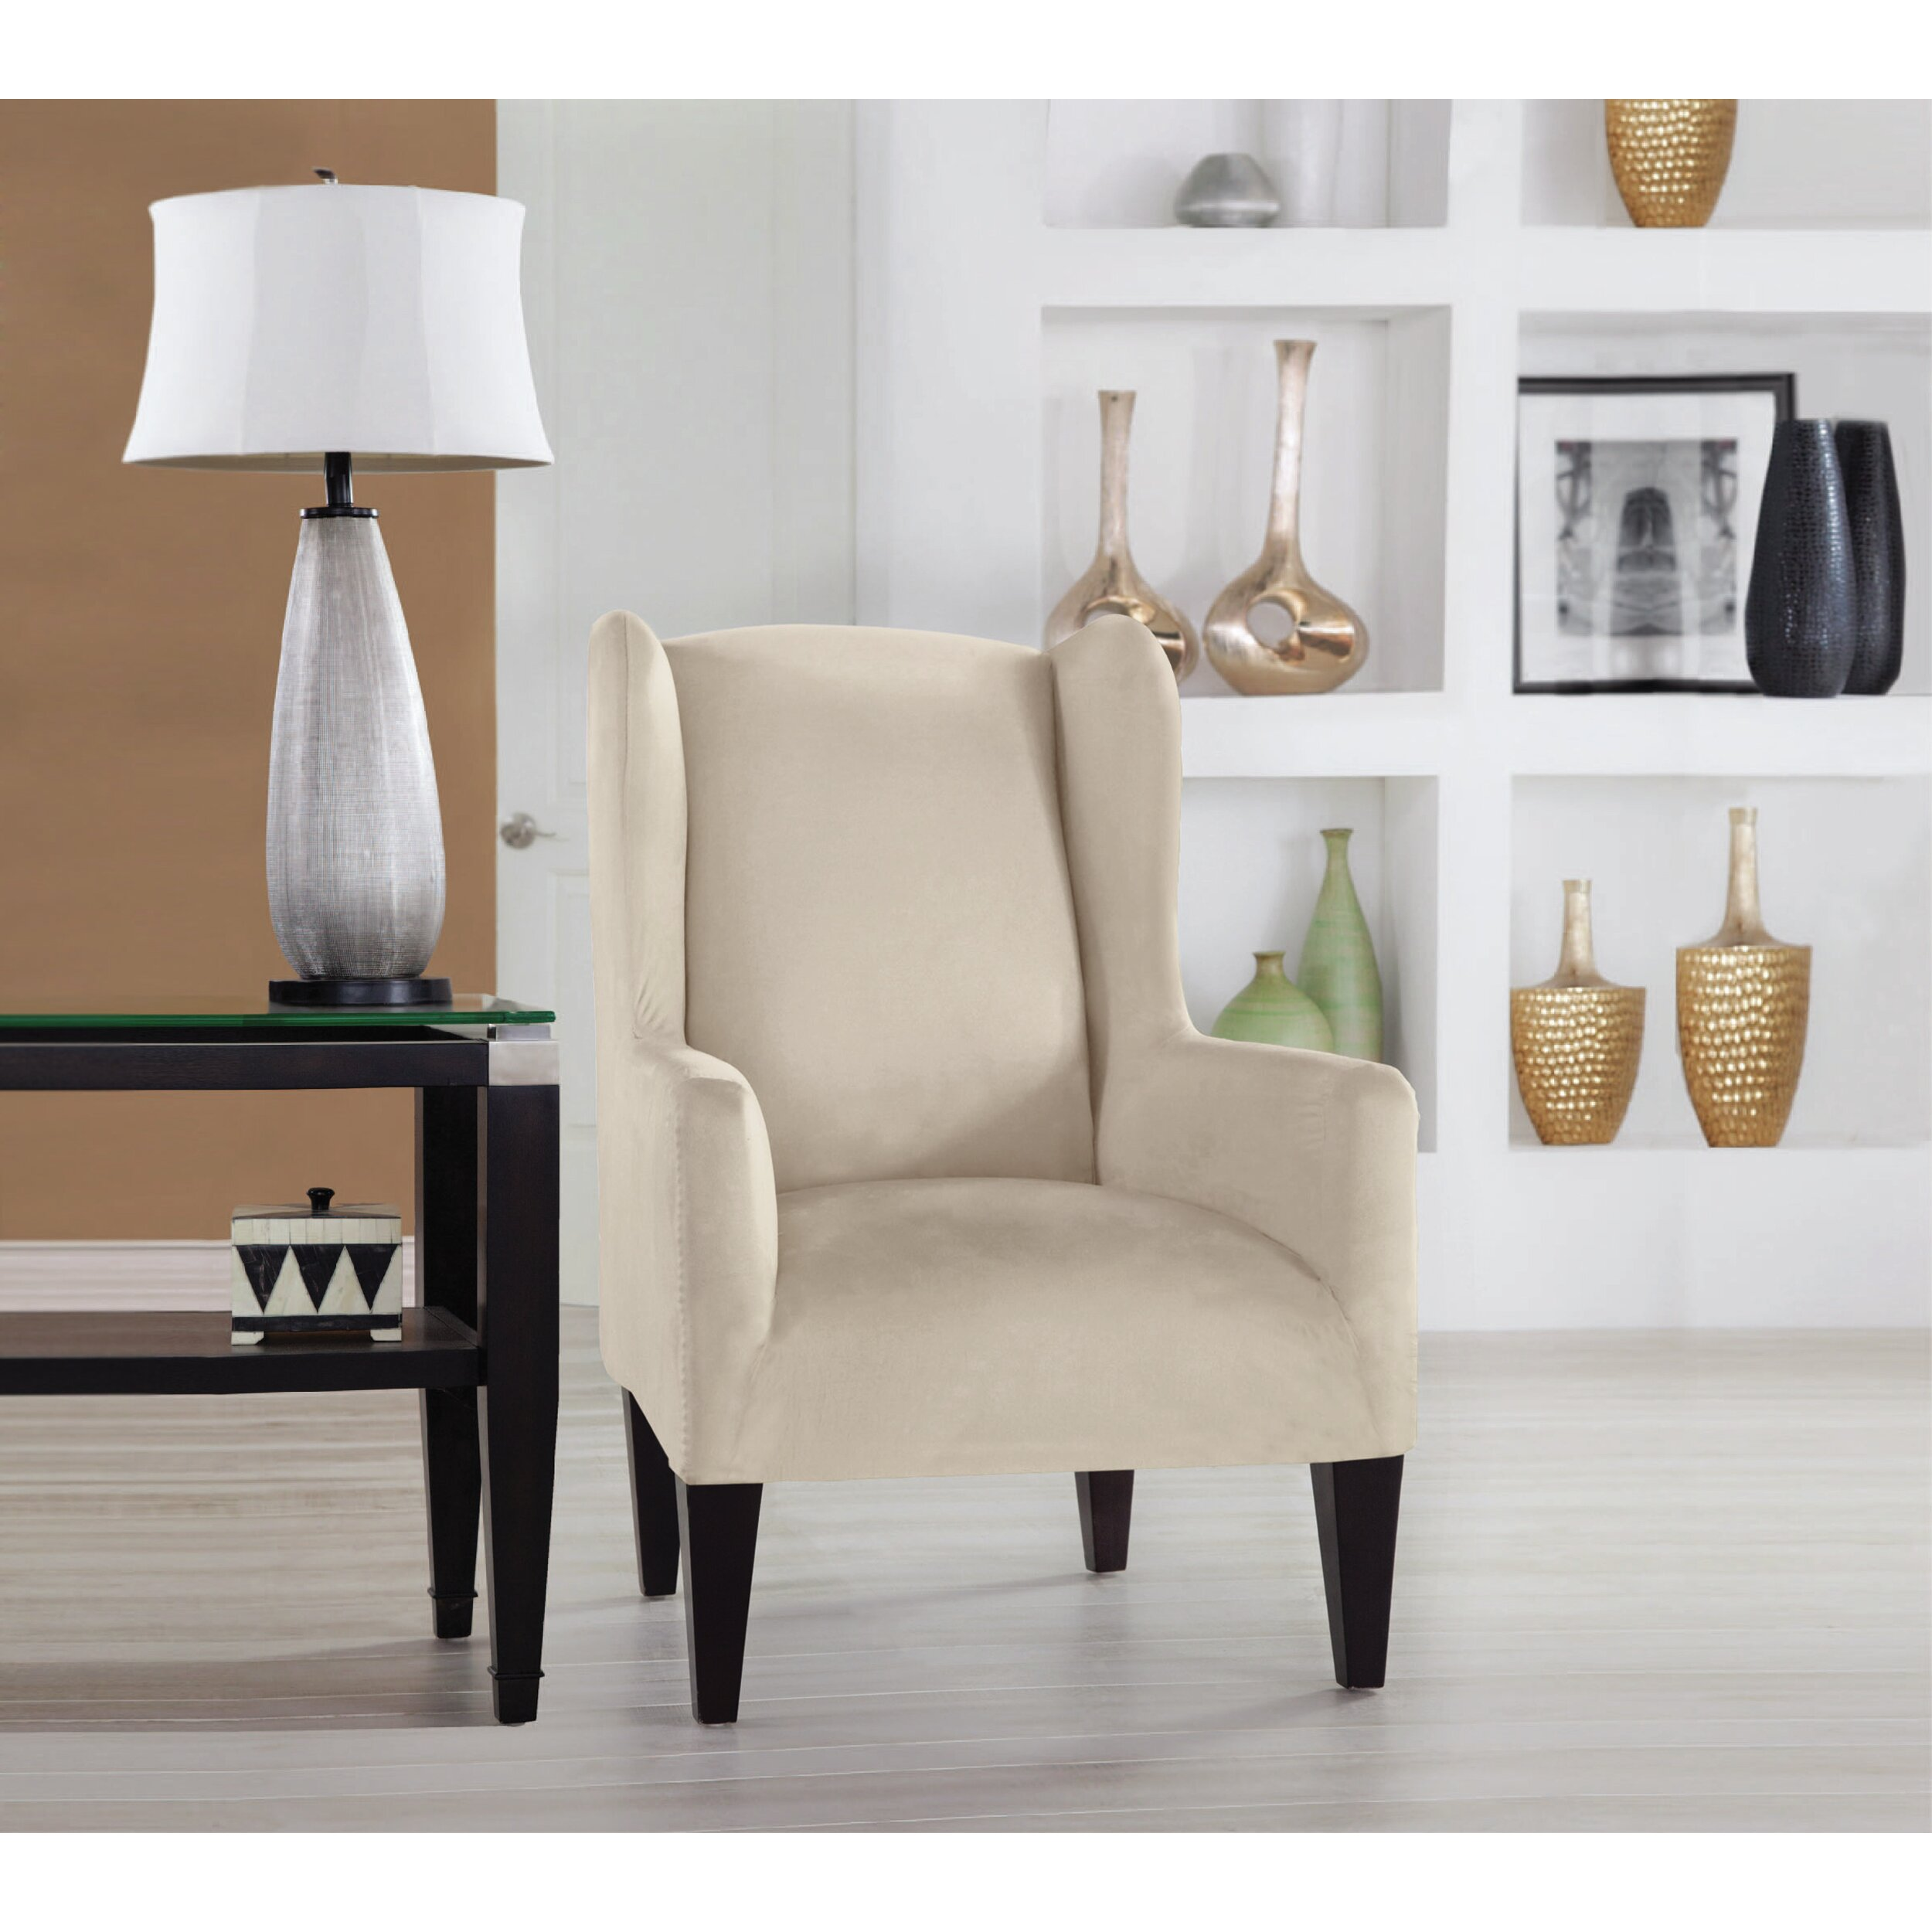 Living Room Chair Slipcovers Perfect Fit Industries Tailor Fit Wingback Chair Slipcover